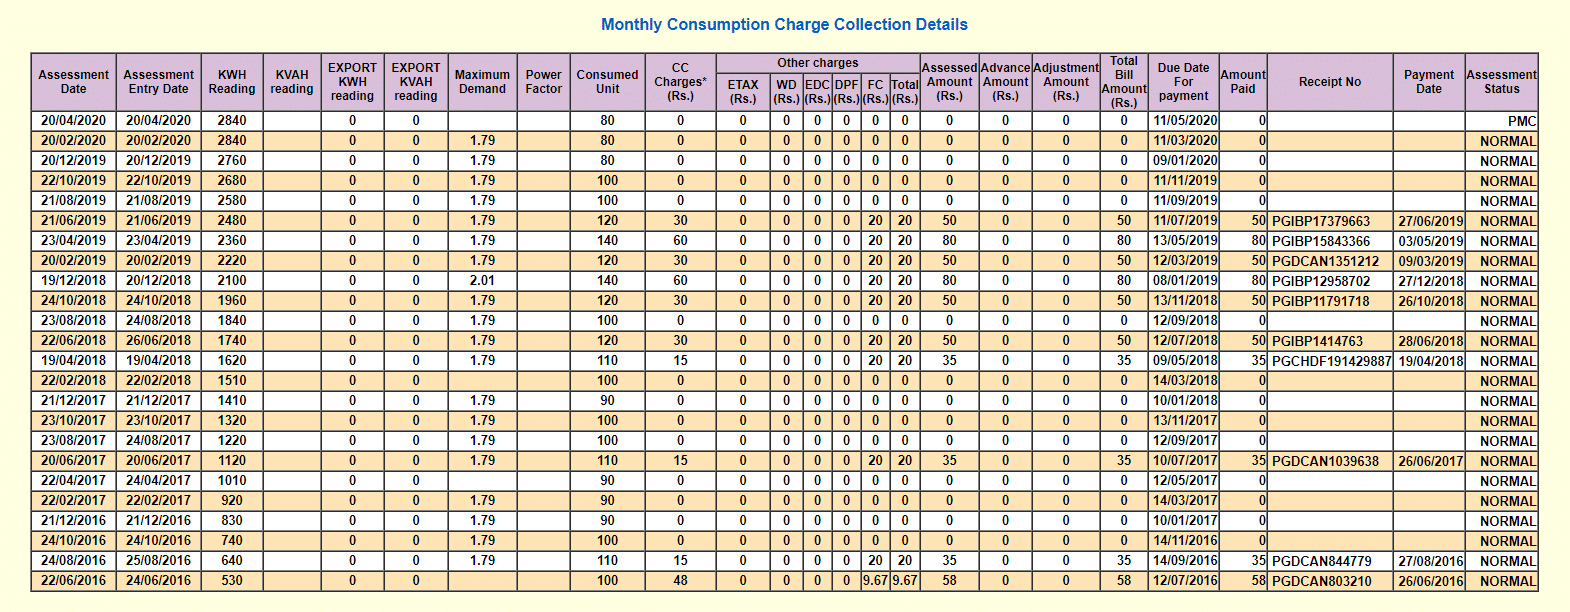 tneb monthly consumption charge collection details